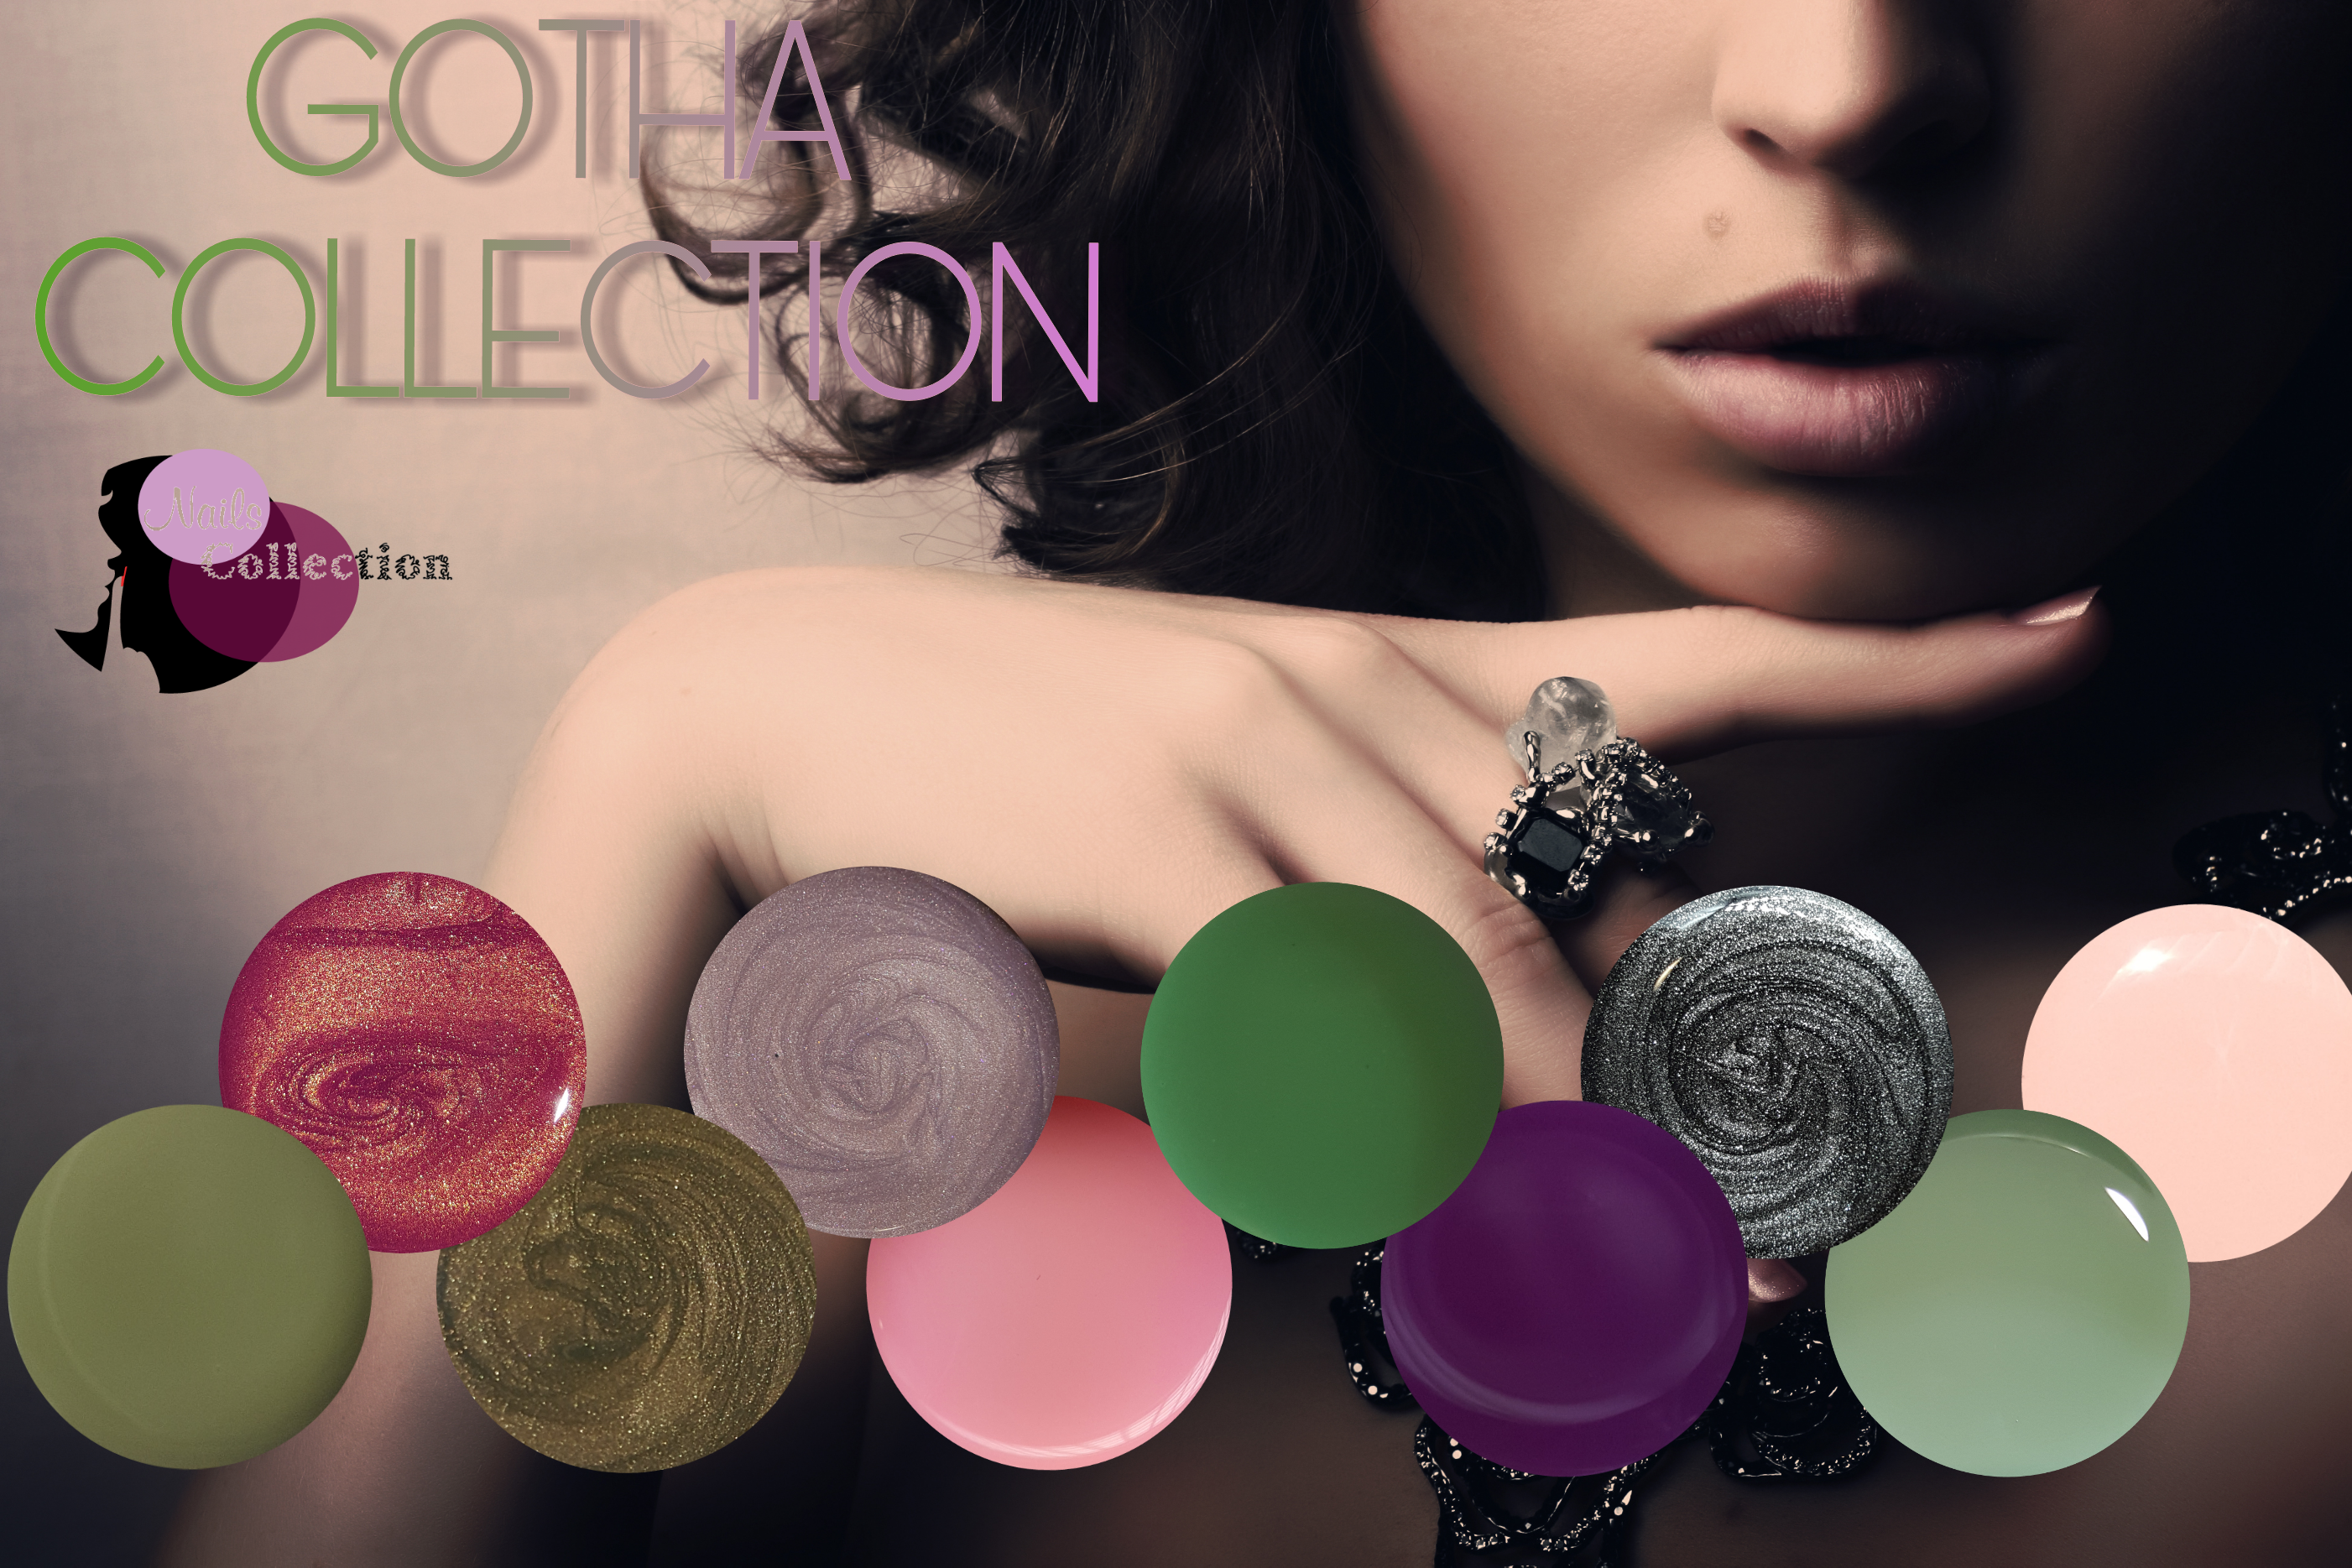 GOTHA COLLECTION